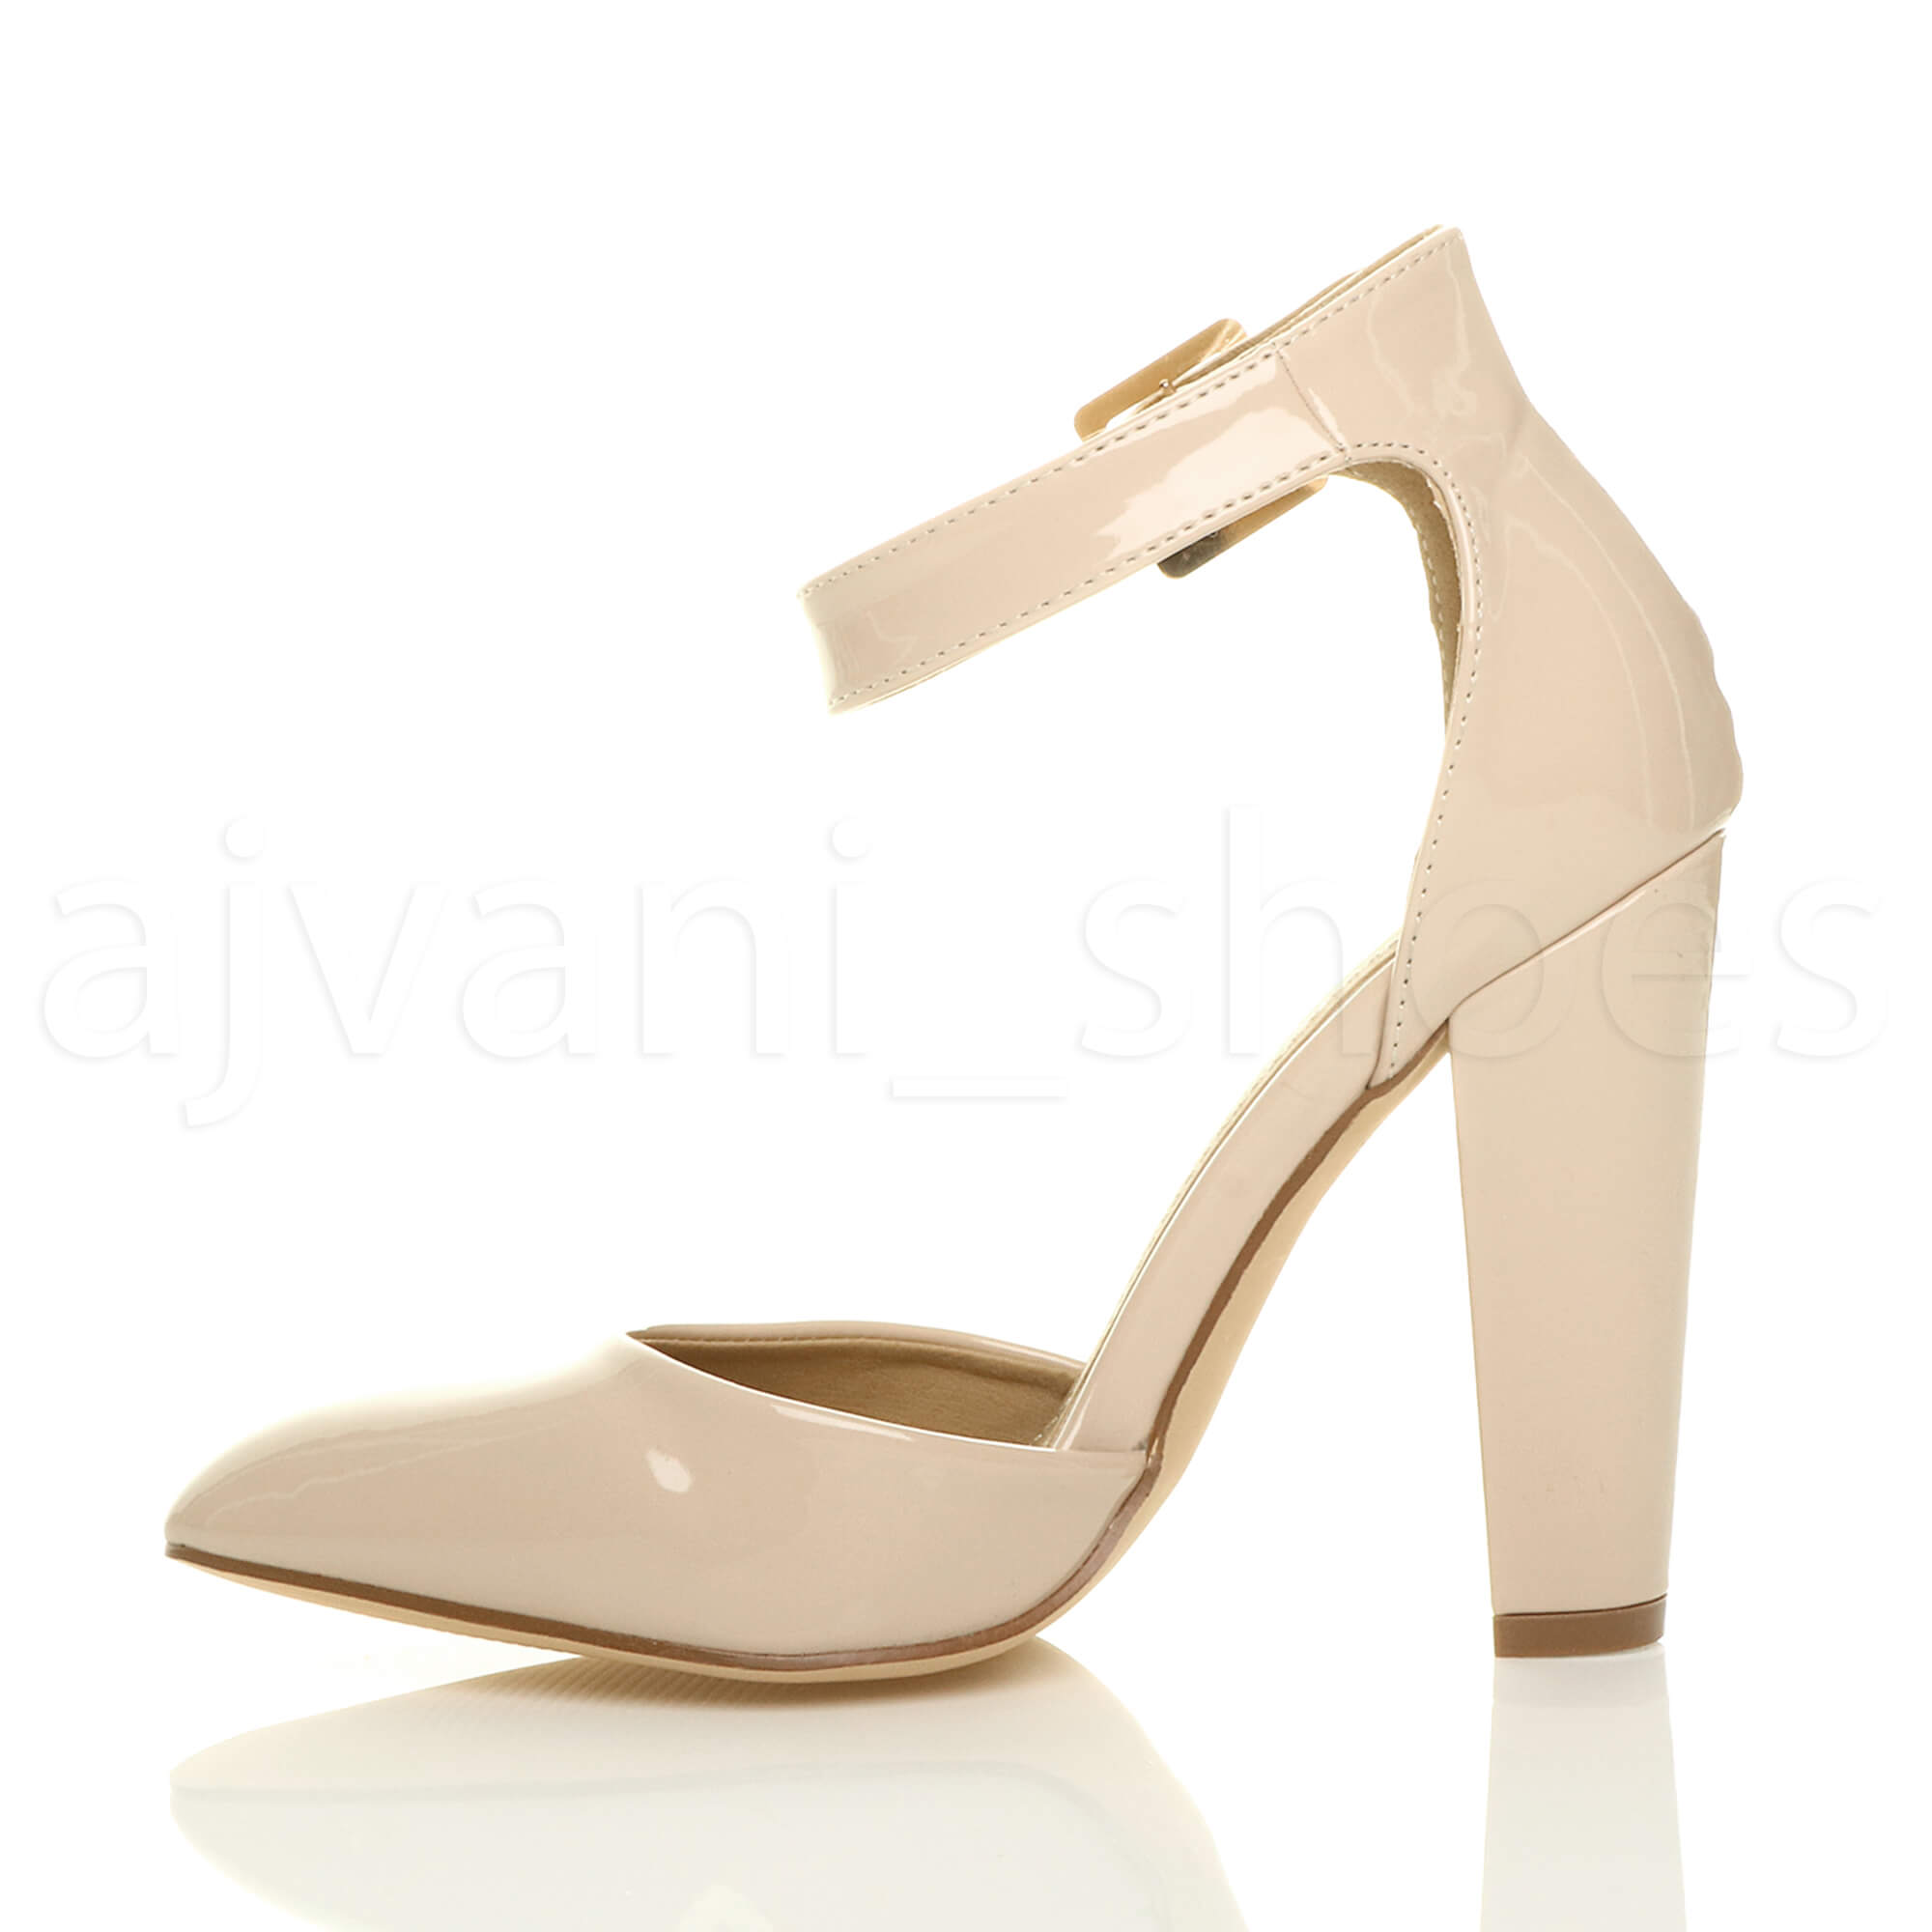 WOMENS-LADIES-HIGH-BLOCK-HEEL-ANKLE-STRAP-BUCKLE-POINTED-COURT-SHOES-SIZE thumbnail 88